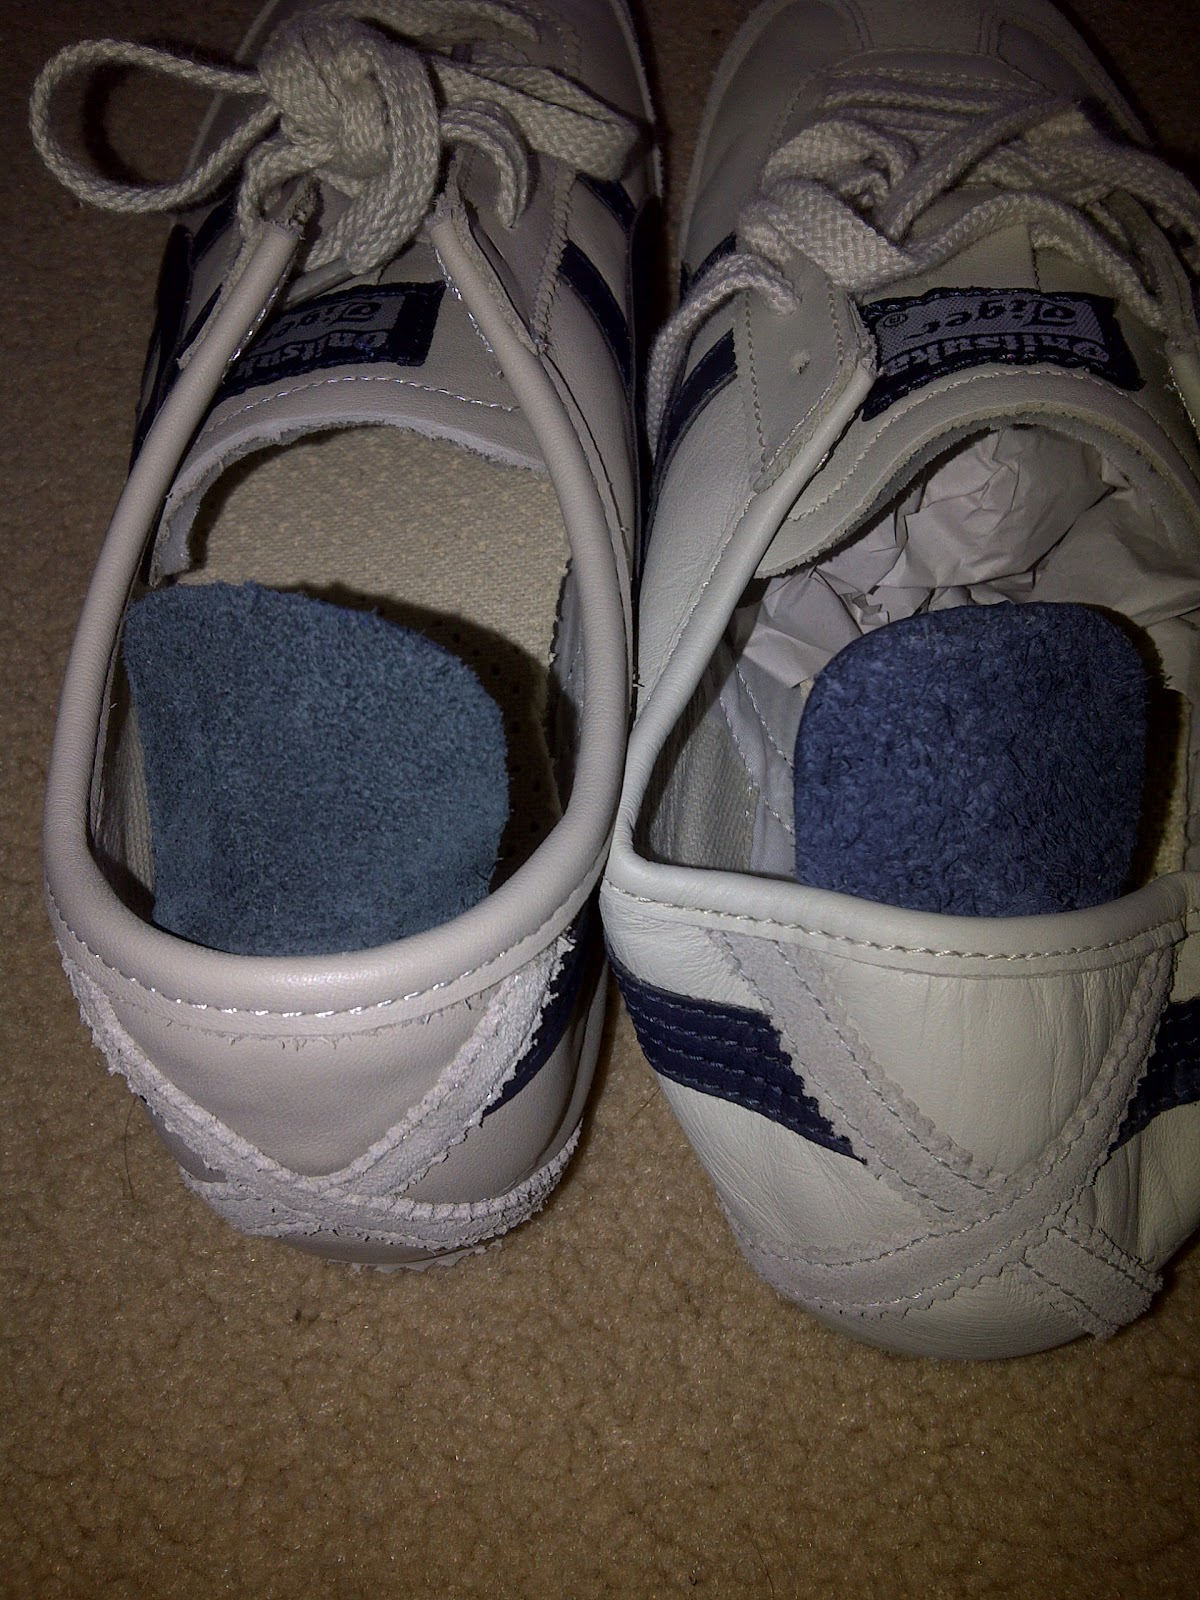 FOOT WEAR GALLERY  HOW TO SPOT FAKE ONITSUKA TIGER